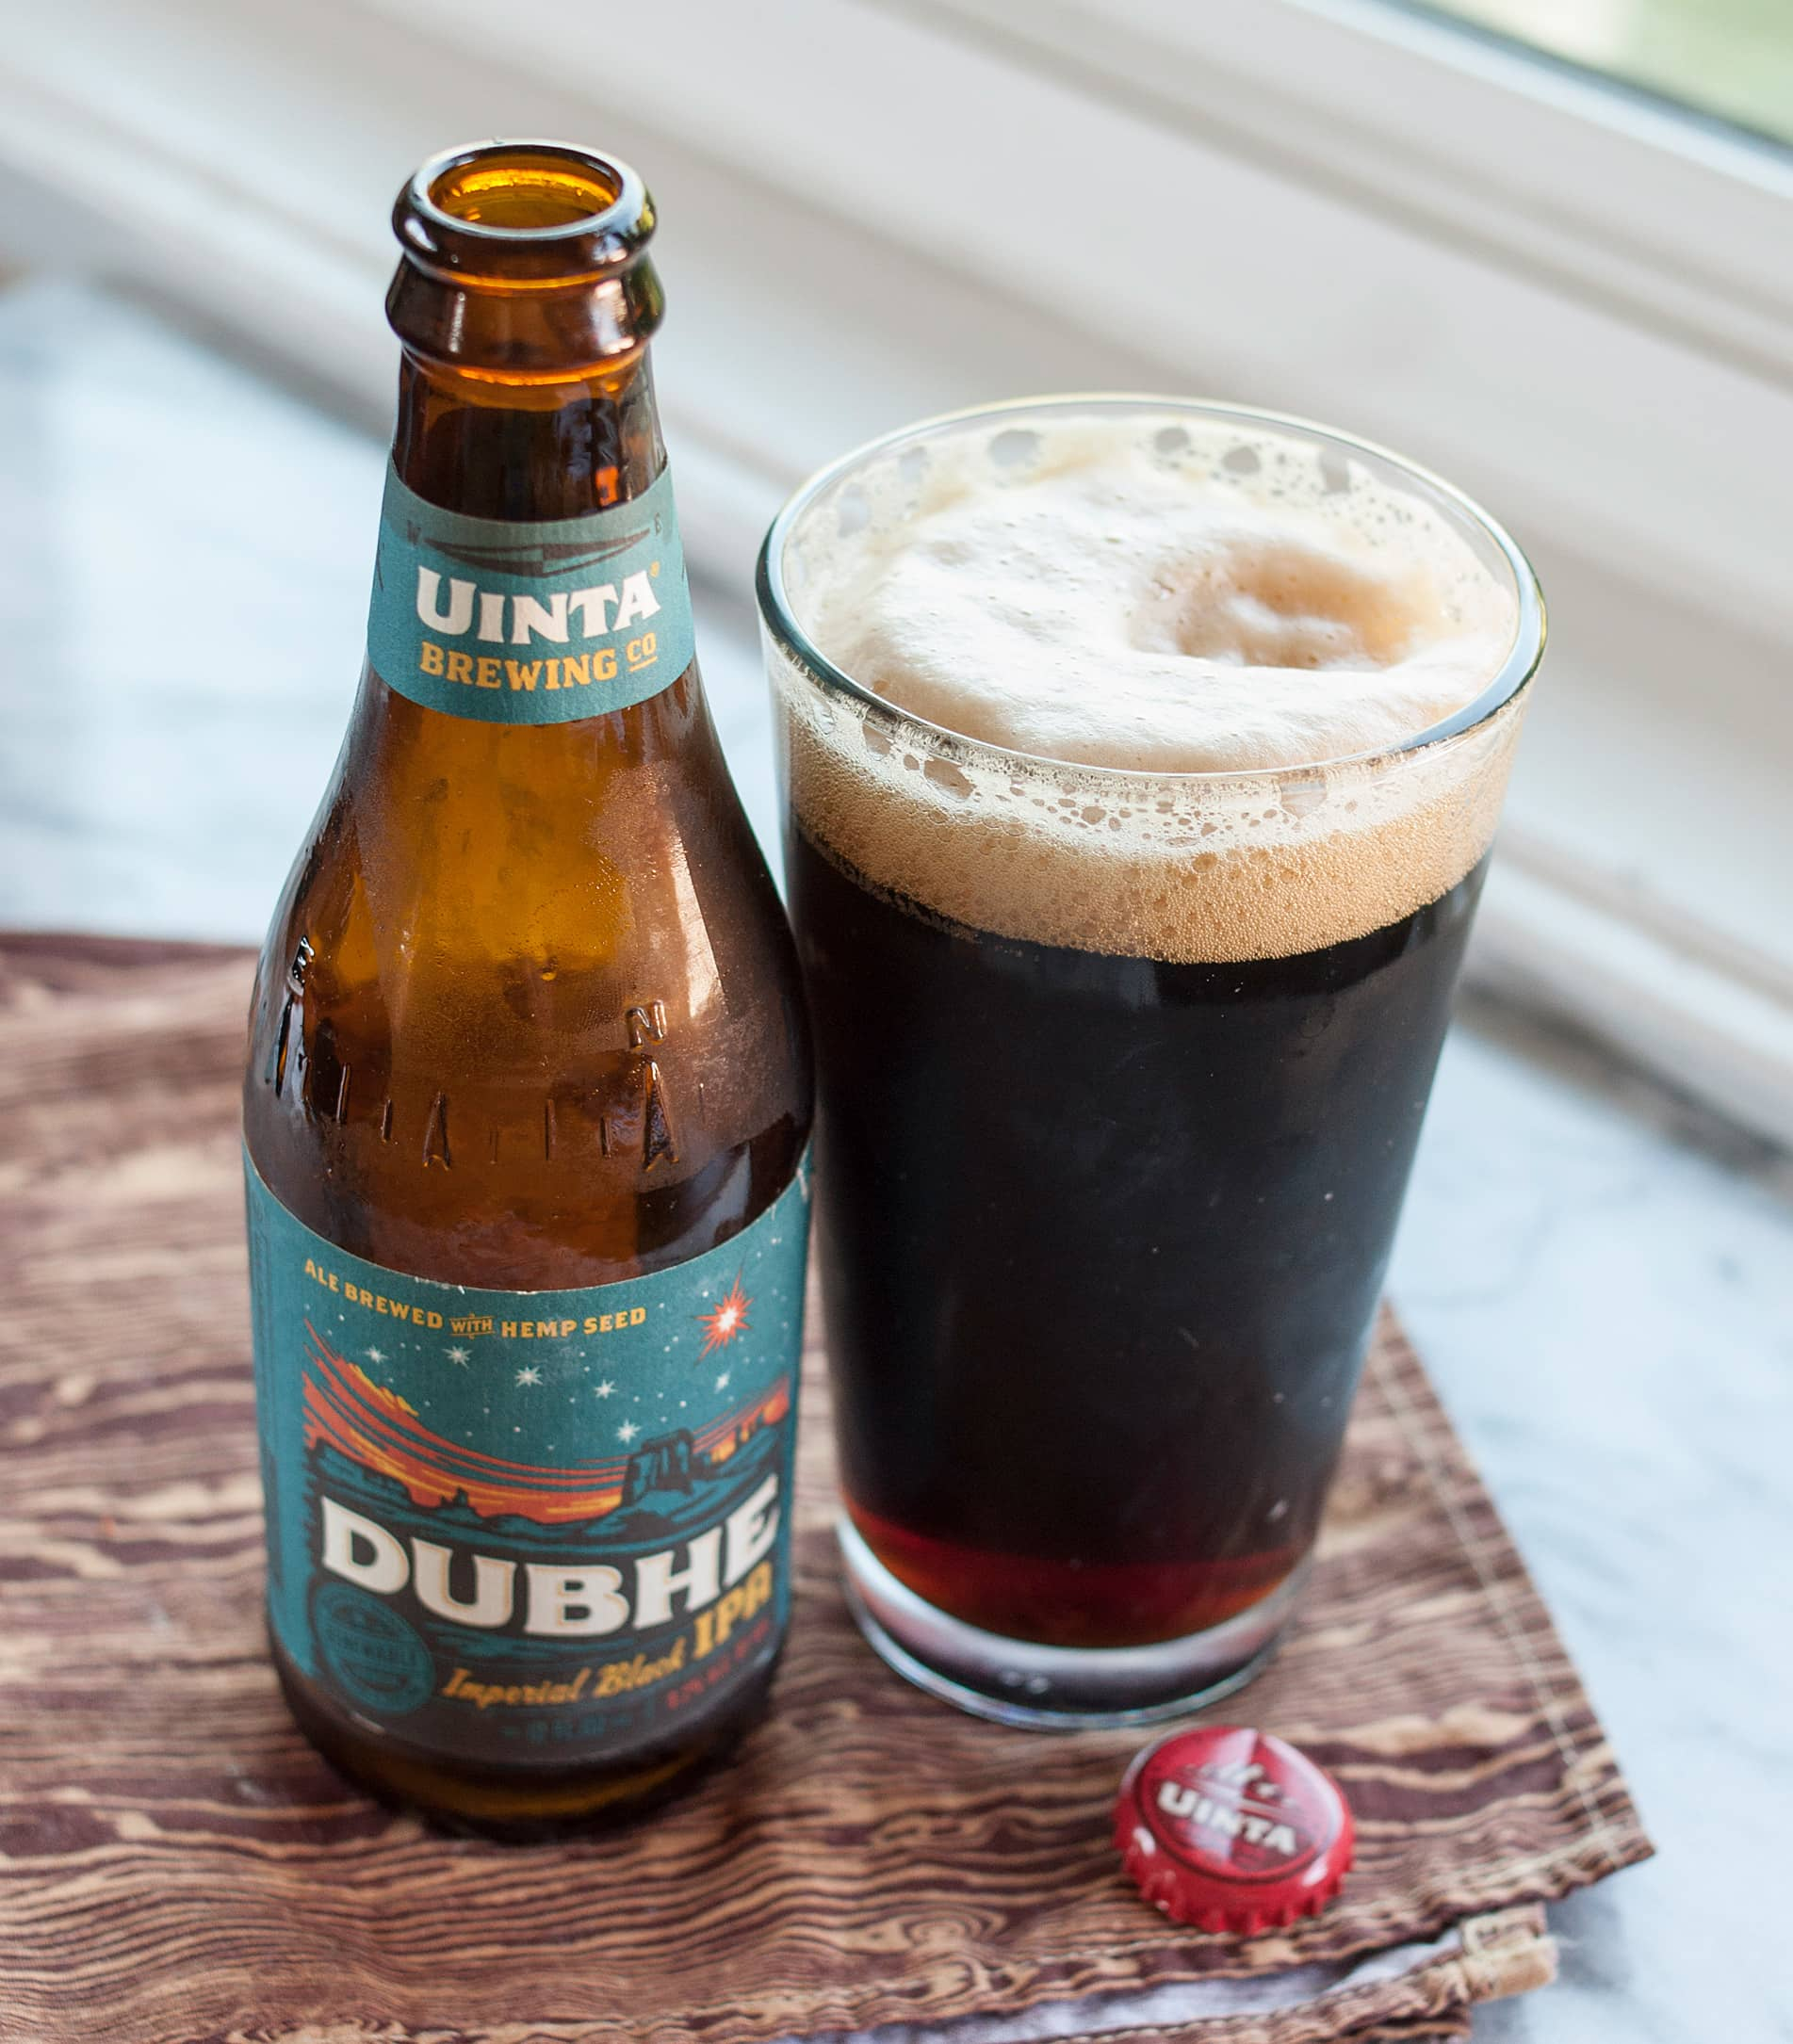 Beer Review: Dubhe Imperial Black IPA from Uinta Brewing Co.